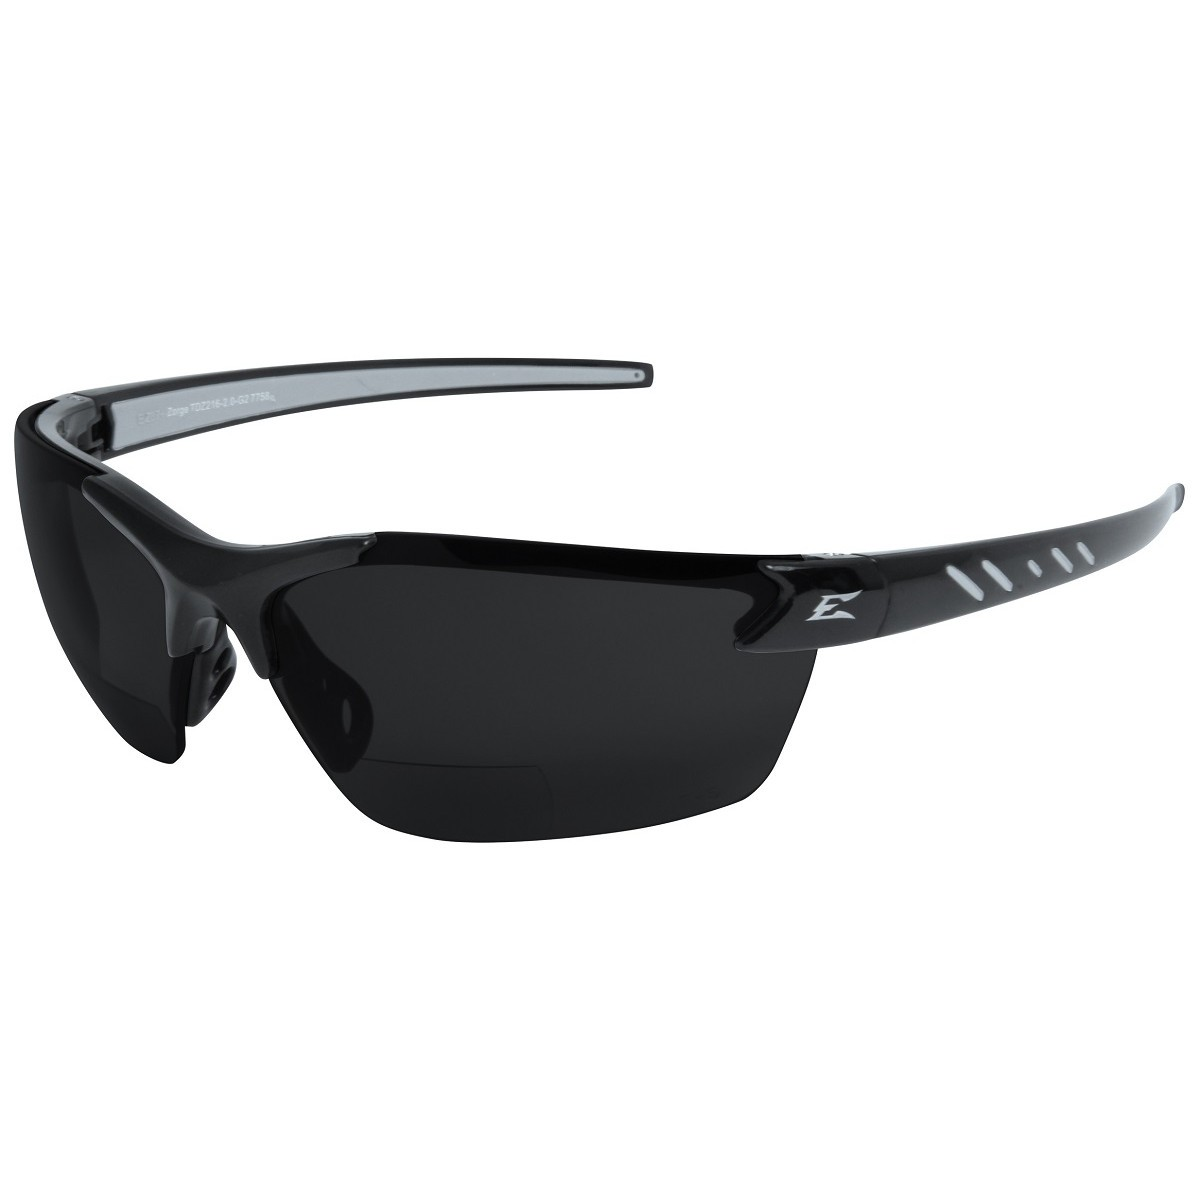 Edge Safety Glasses Replacement Lenses